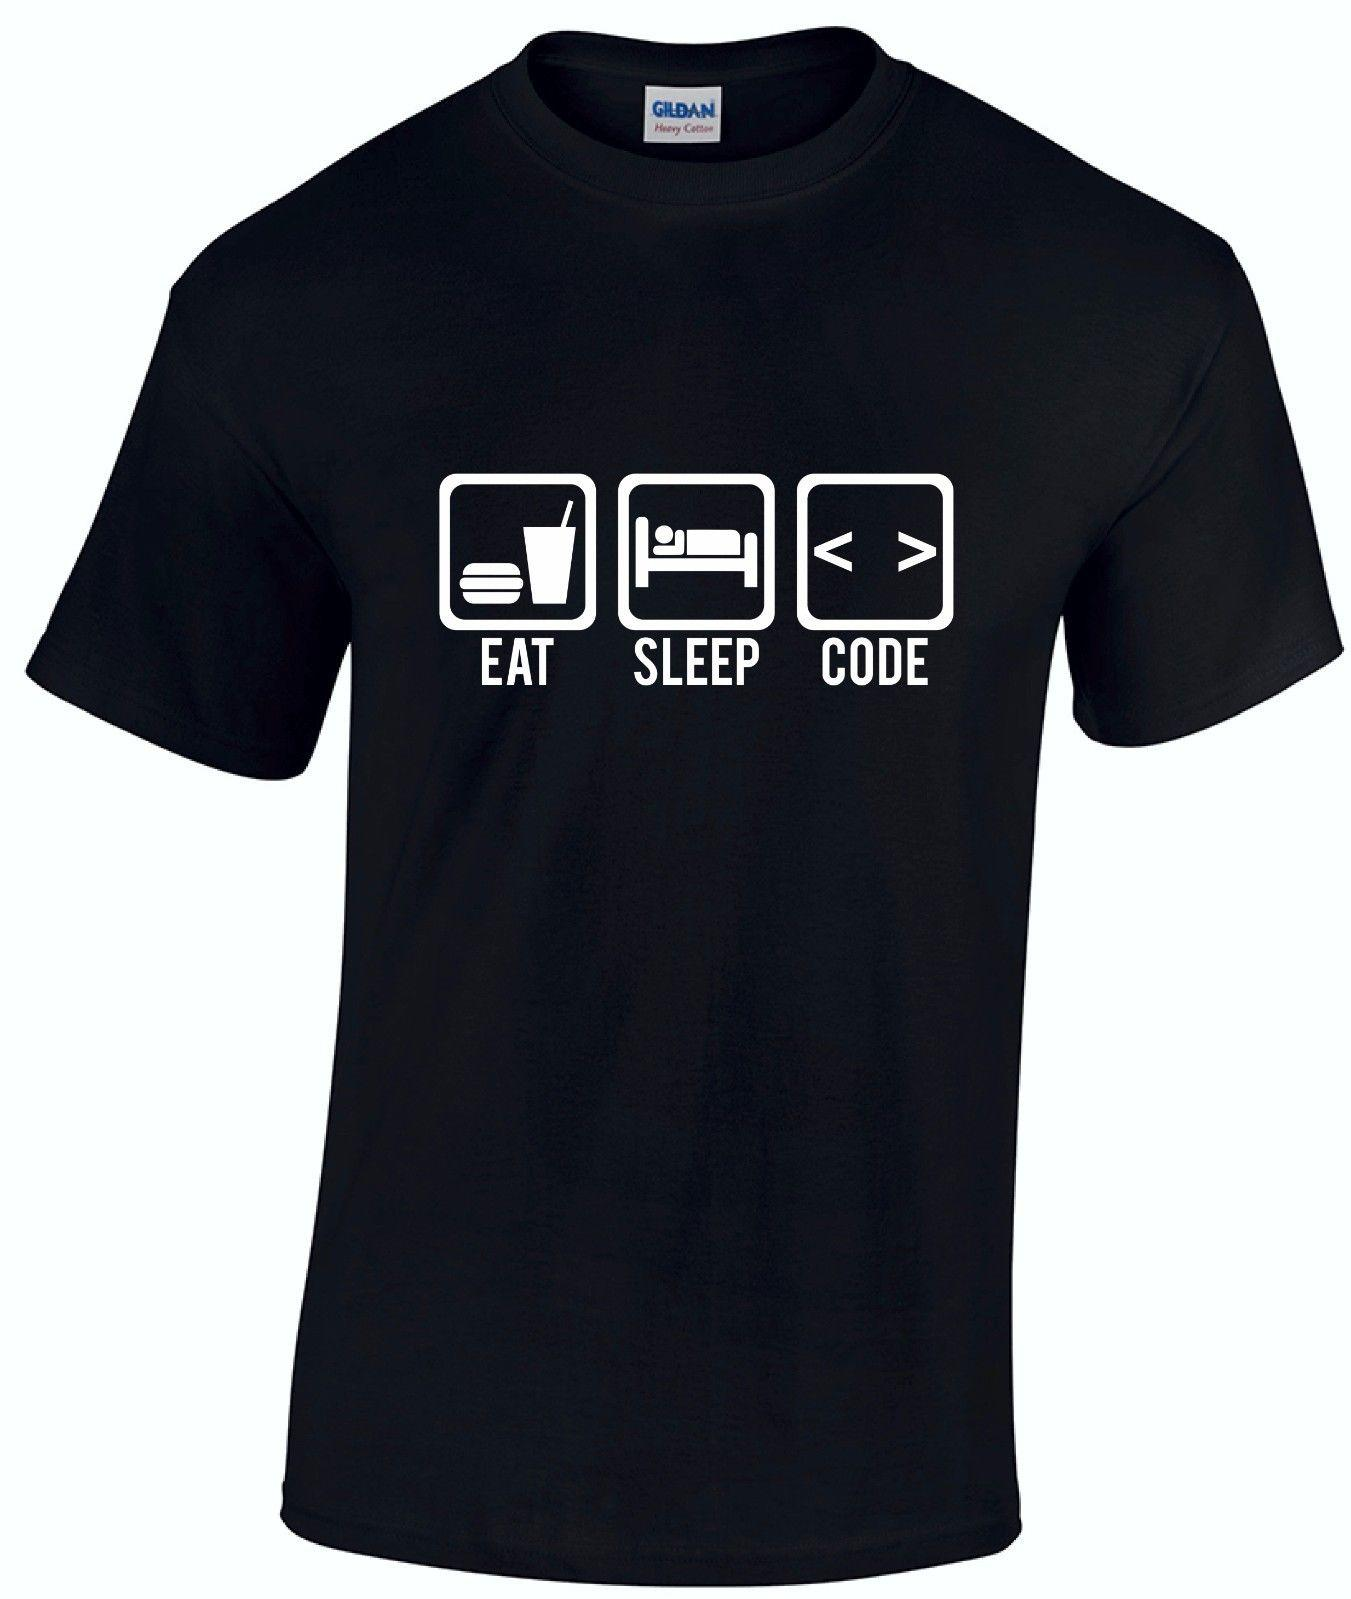 5e09611a Eat Sleep Code Computer Programmer Funny Mens T Shirt Christmas Gift FREE  POST Funny Unisex T Shirt Every Day Funny Cool Shirts From Thetoynation, ...